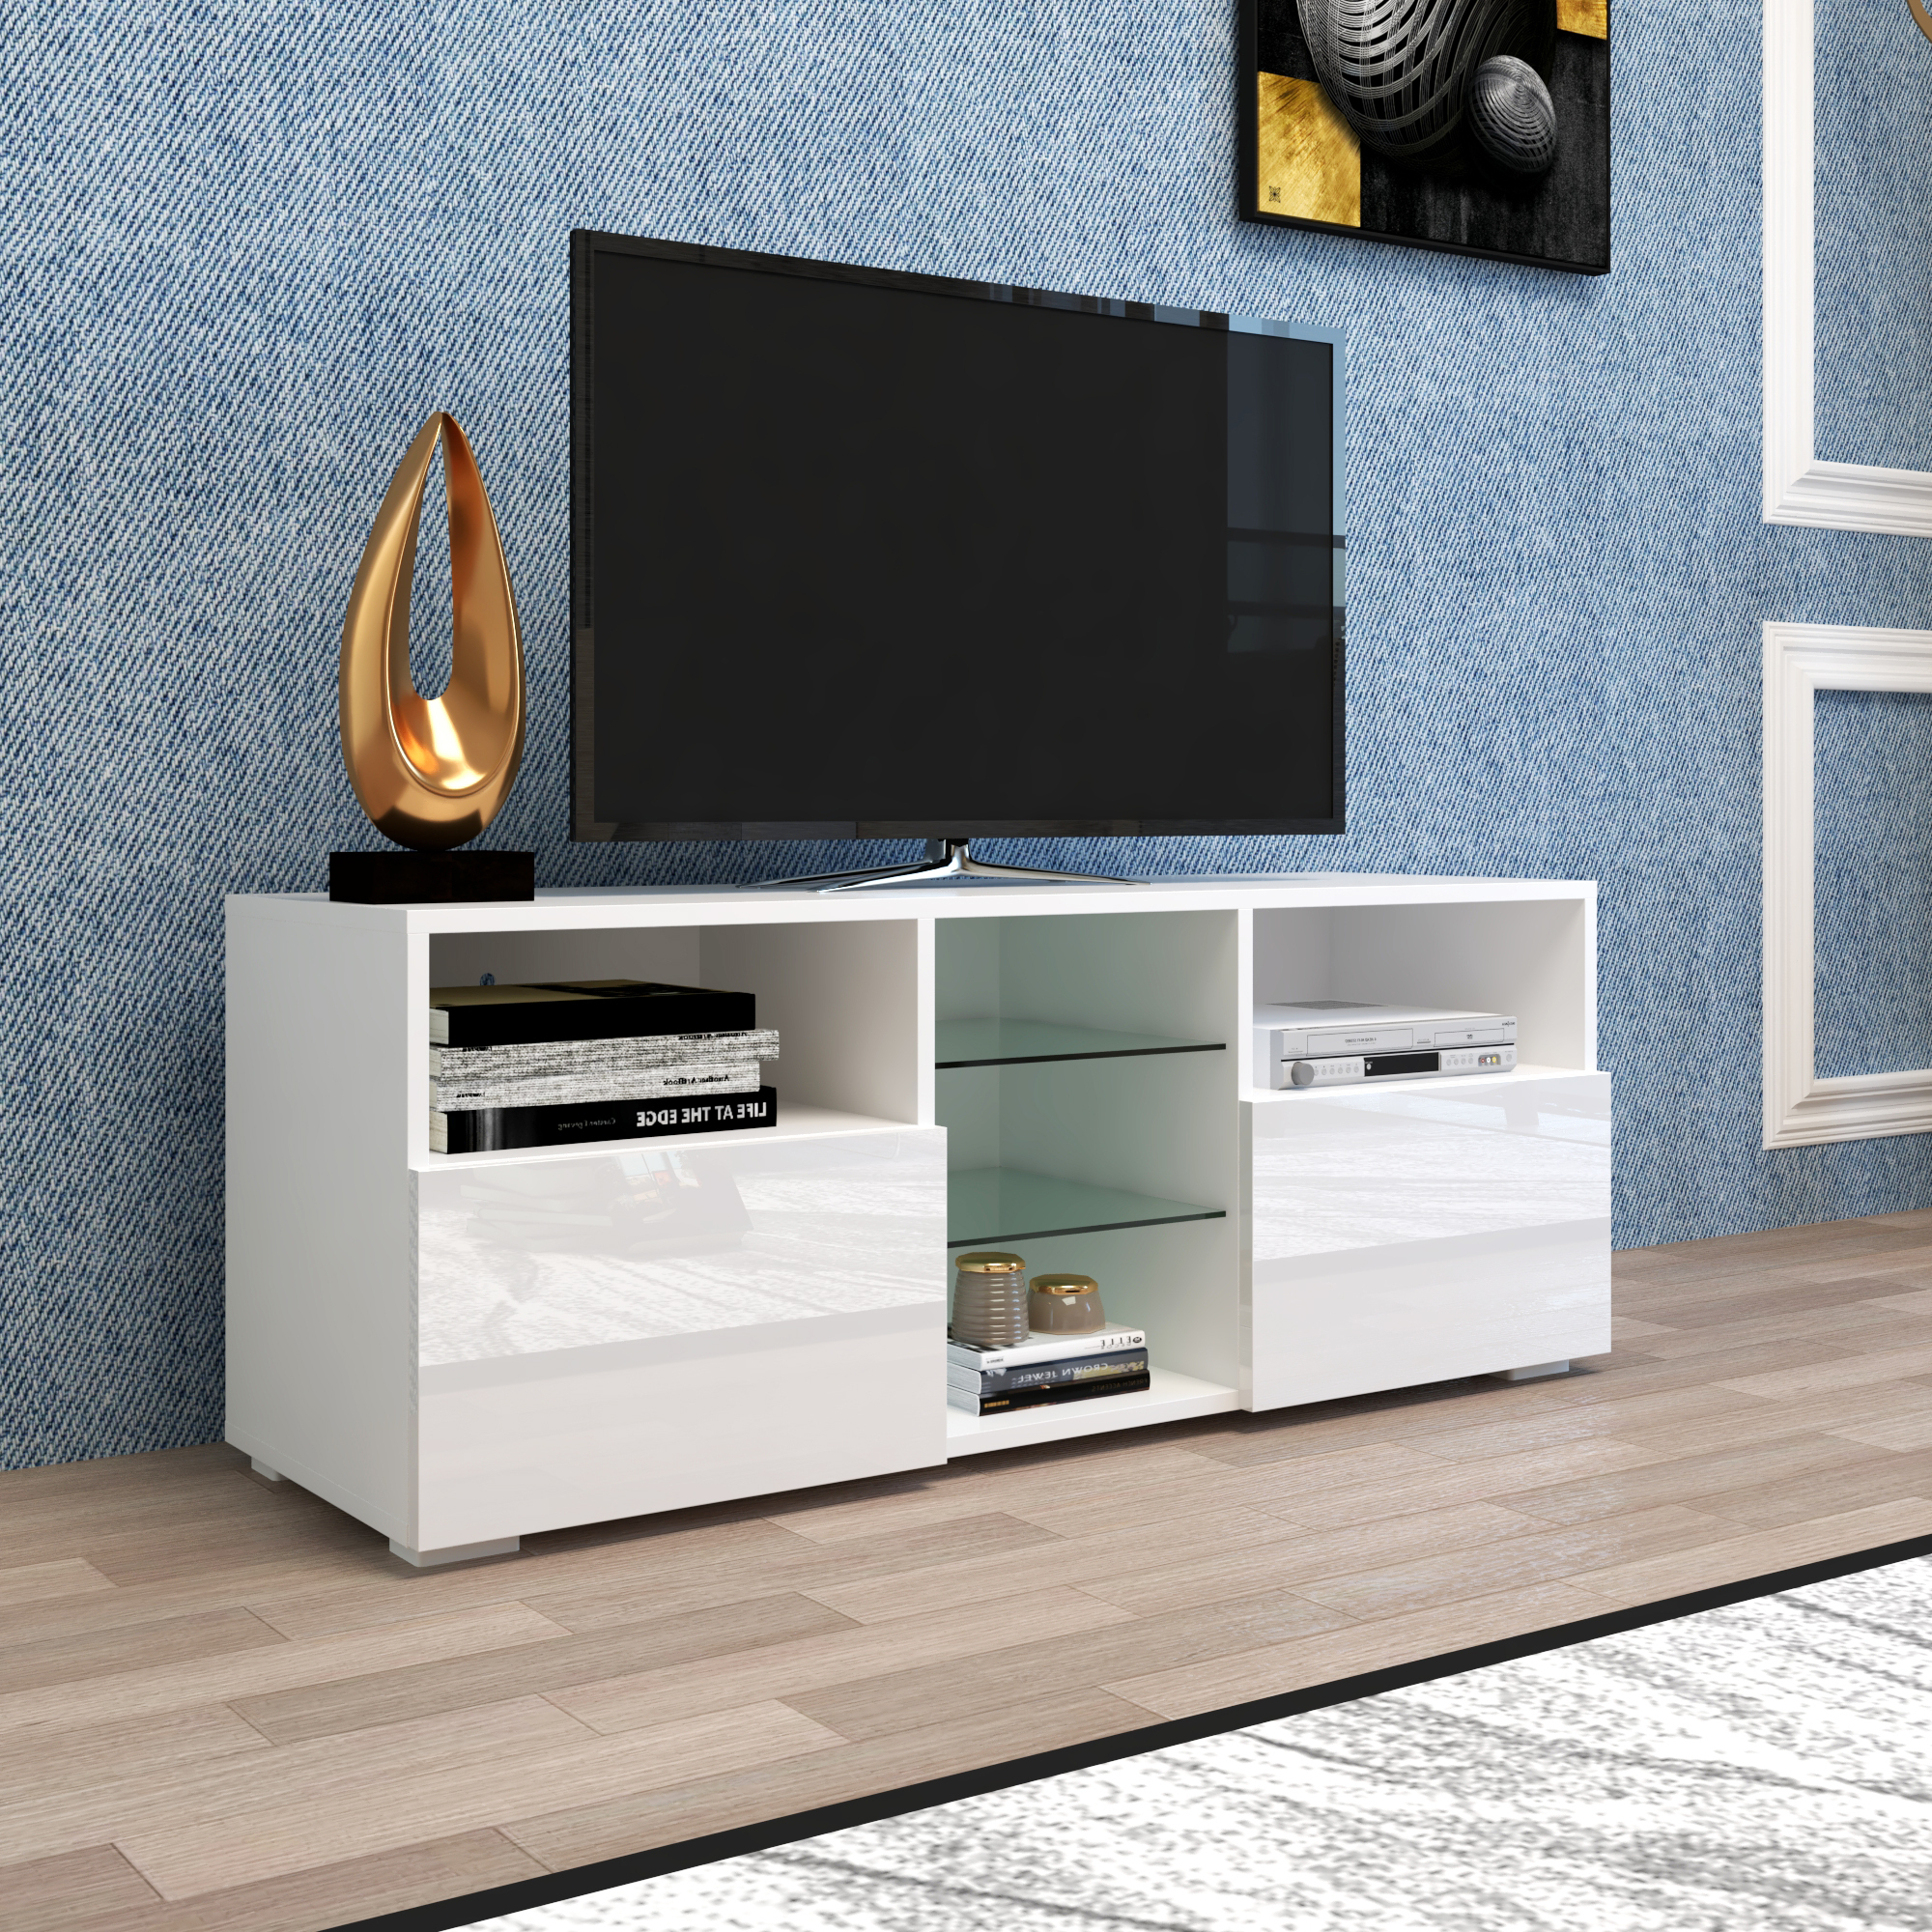 """Yofe Tv Entertainment Center For Up To 65 Inch Tv, High Inside Best And Newest Neilsen Tv Stands For Tvs Up To 65"""" (View 3 of 25)"""